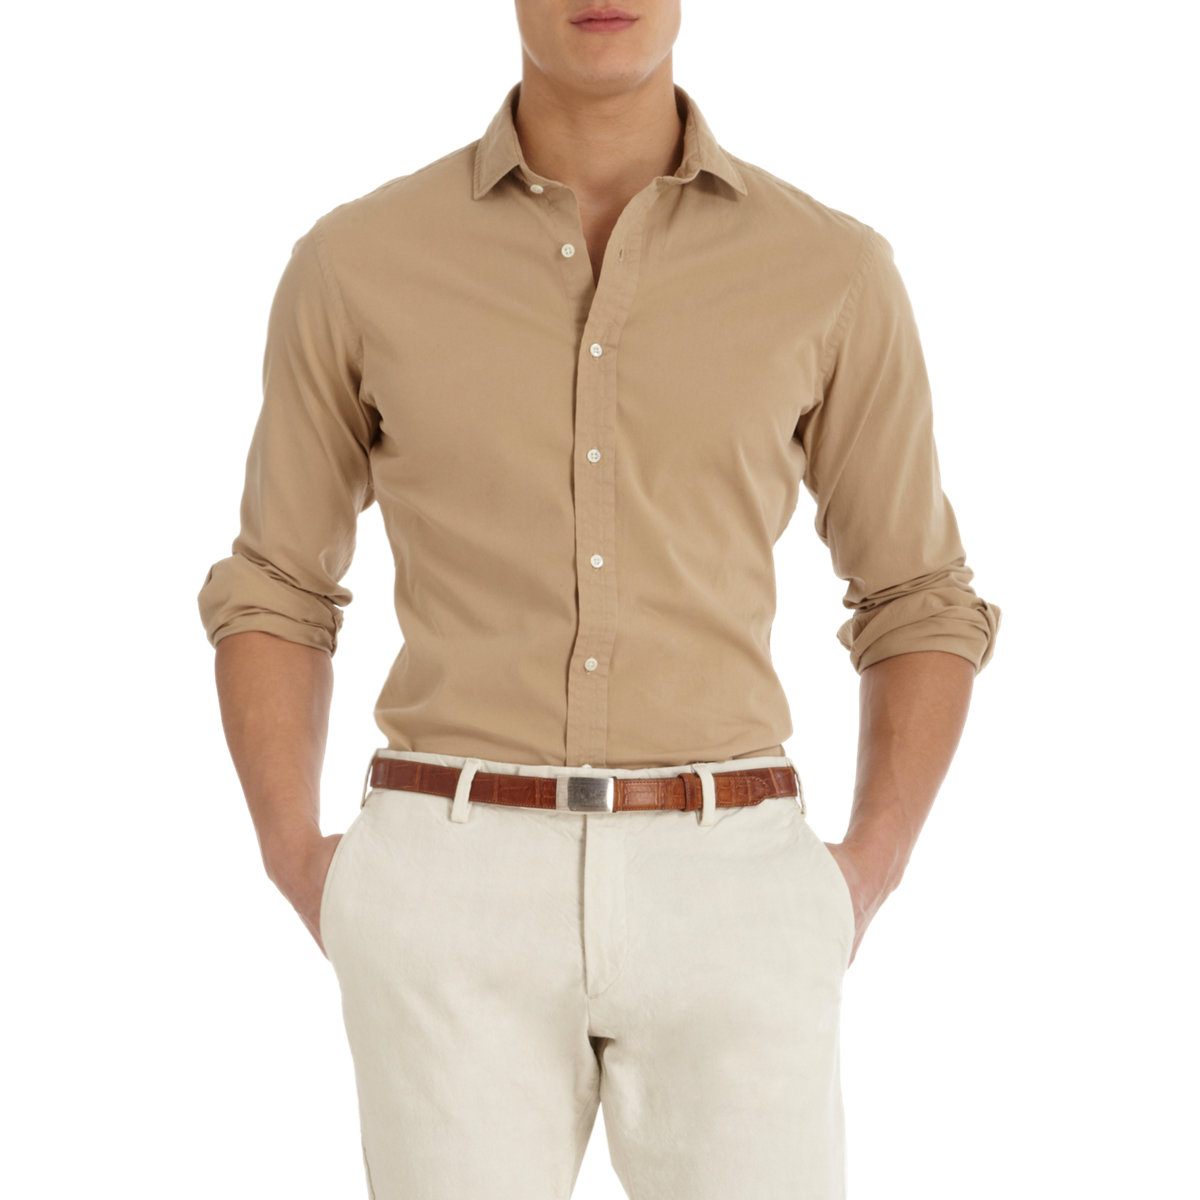 Ralph lauren black label spread collar shirt in beige for for Men s spread collar shirts